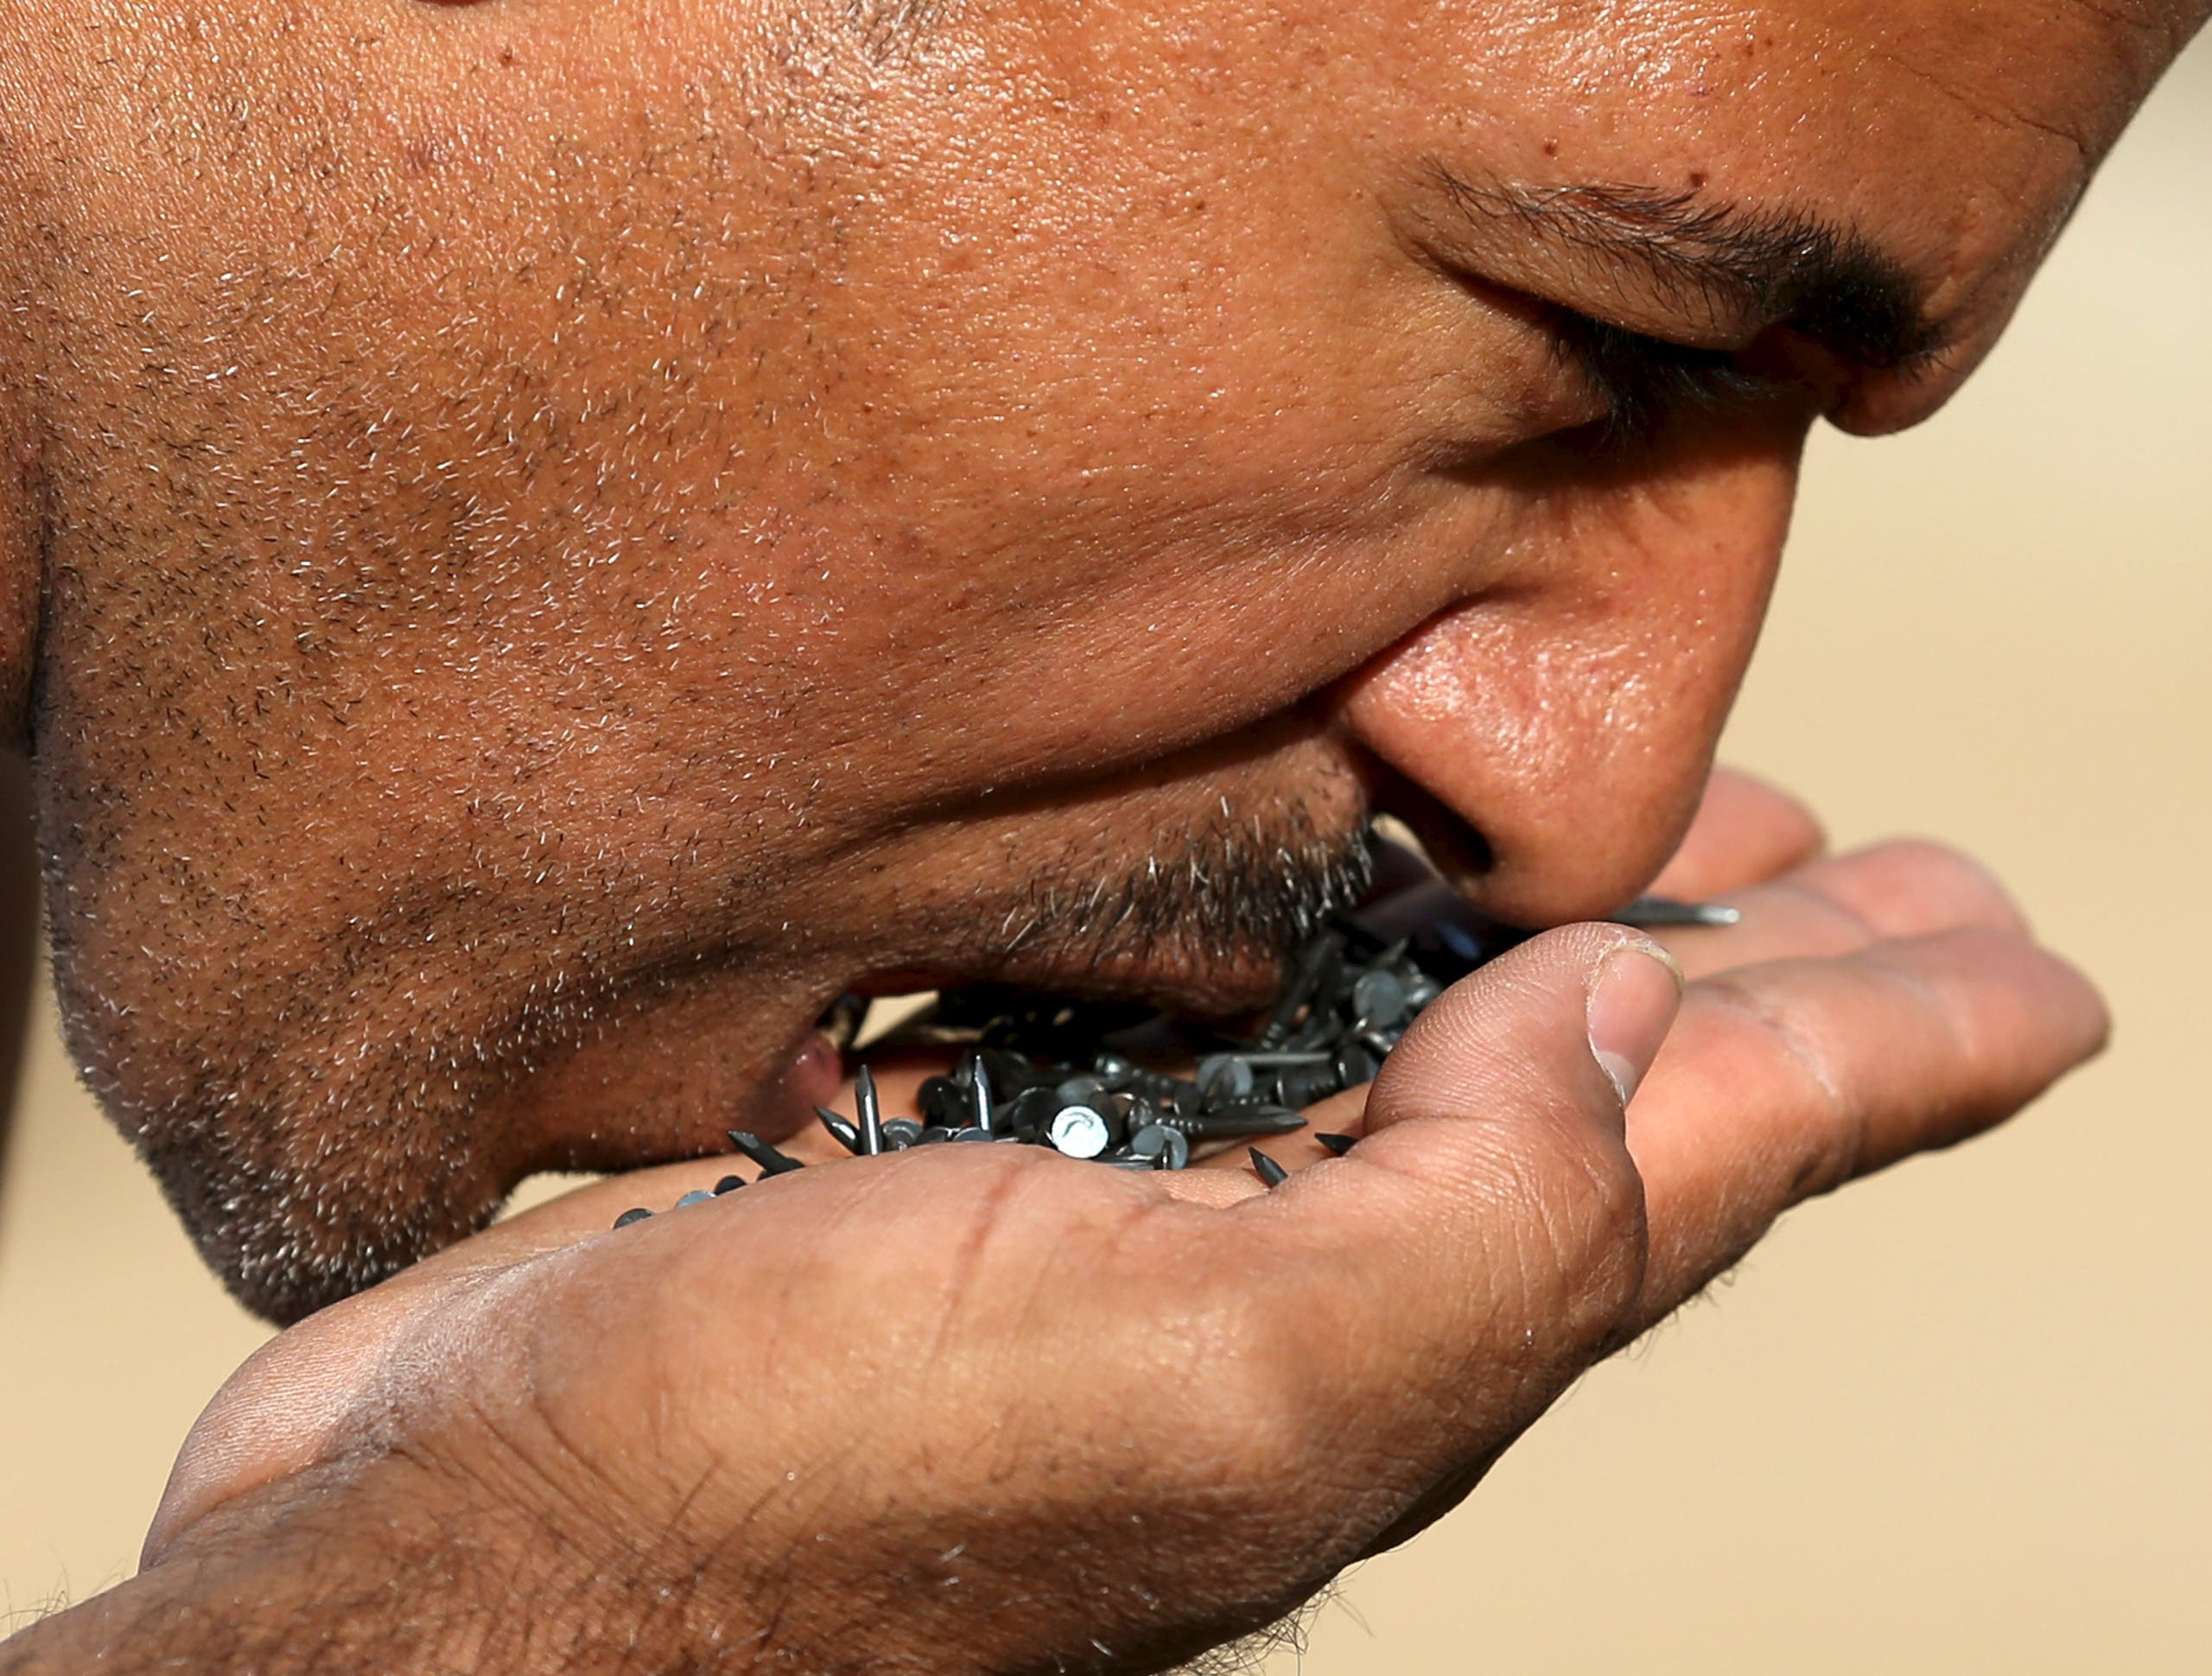 Egyptian strongman Karim Hussein, 38, eats nails in Cairo, Egypt, March 18, 2016. (Reuters)